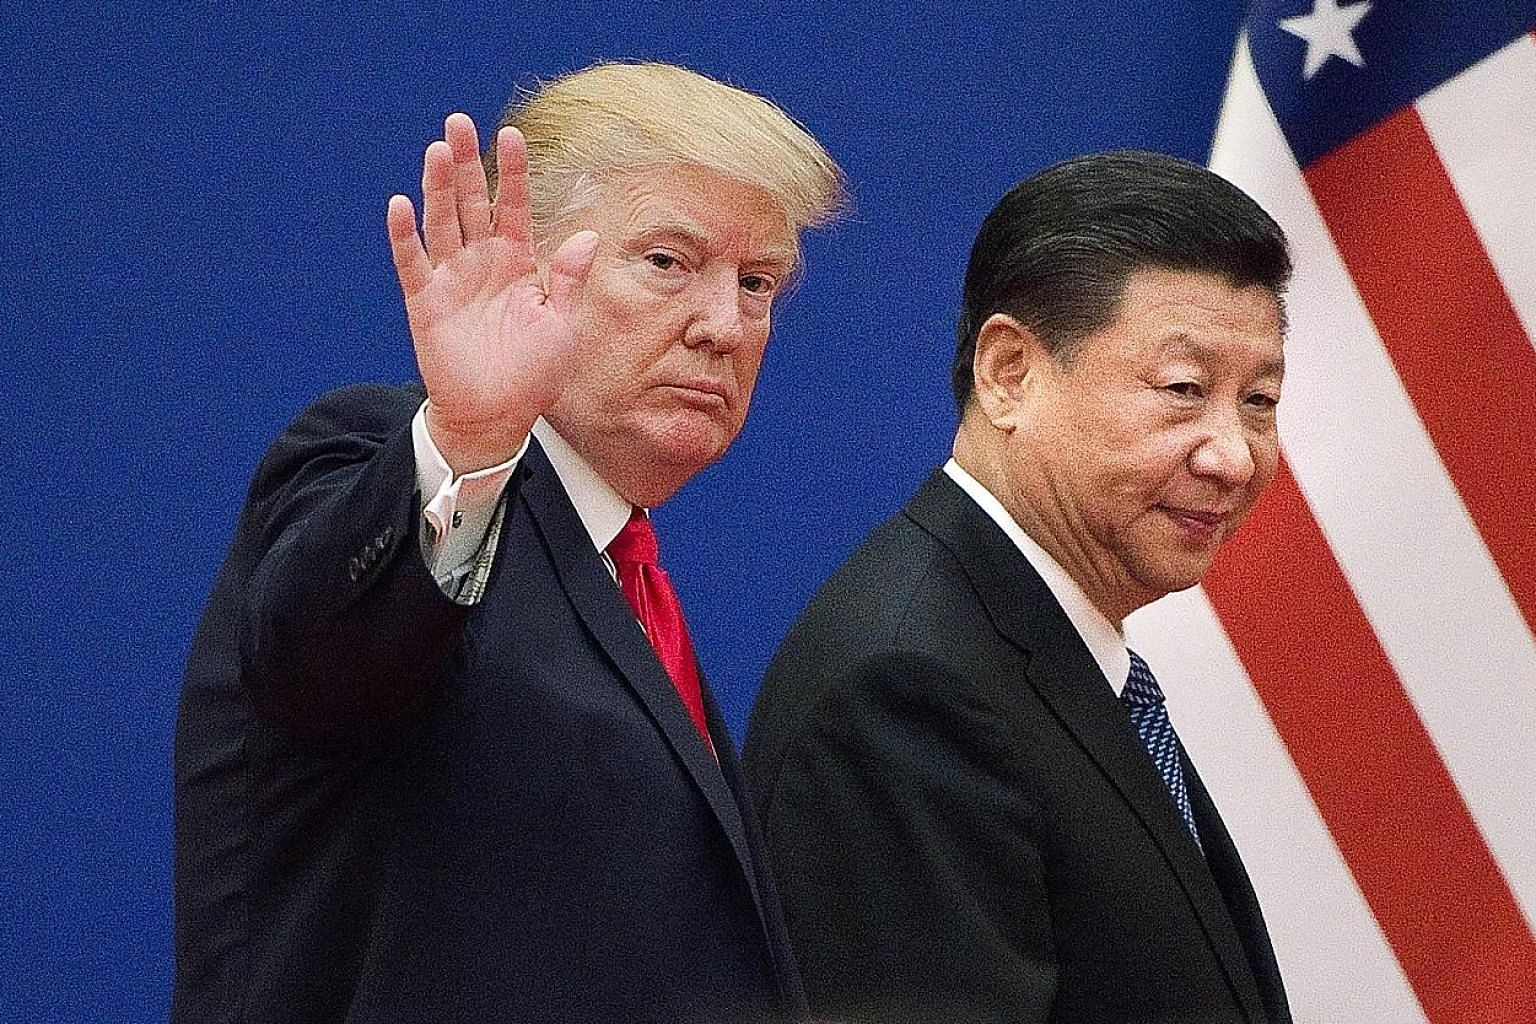 US President Donald Trump and Chinese President Xi Jinping at a business leaders event at the Great Hall of the People in Beijing, in a photo taken in November 2017. Just as careful diplomacy is required in military matters, it is also integral to Am